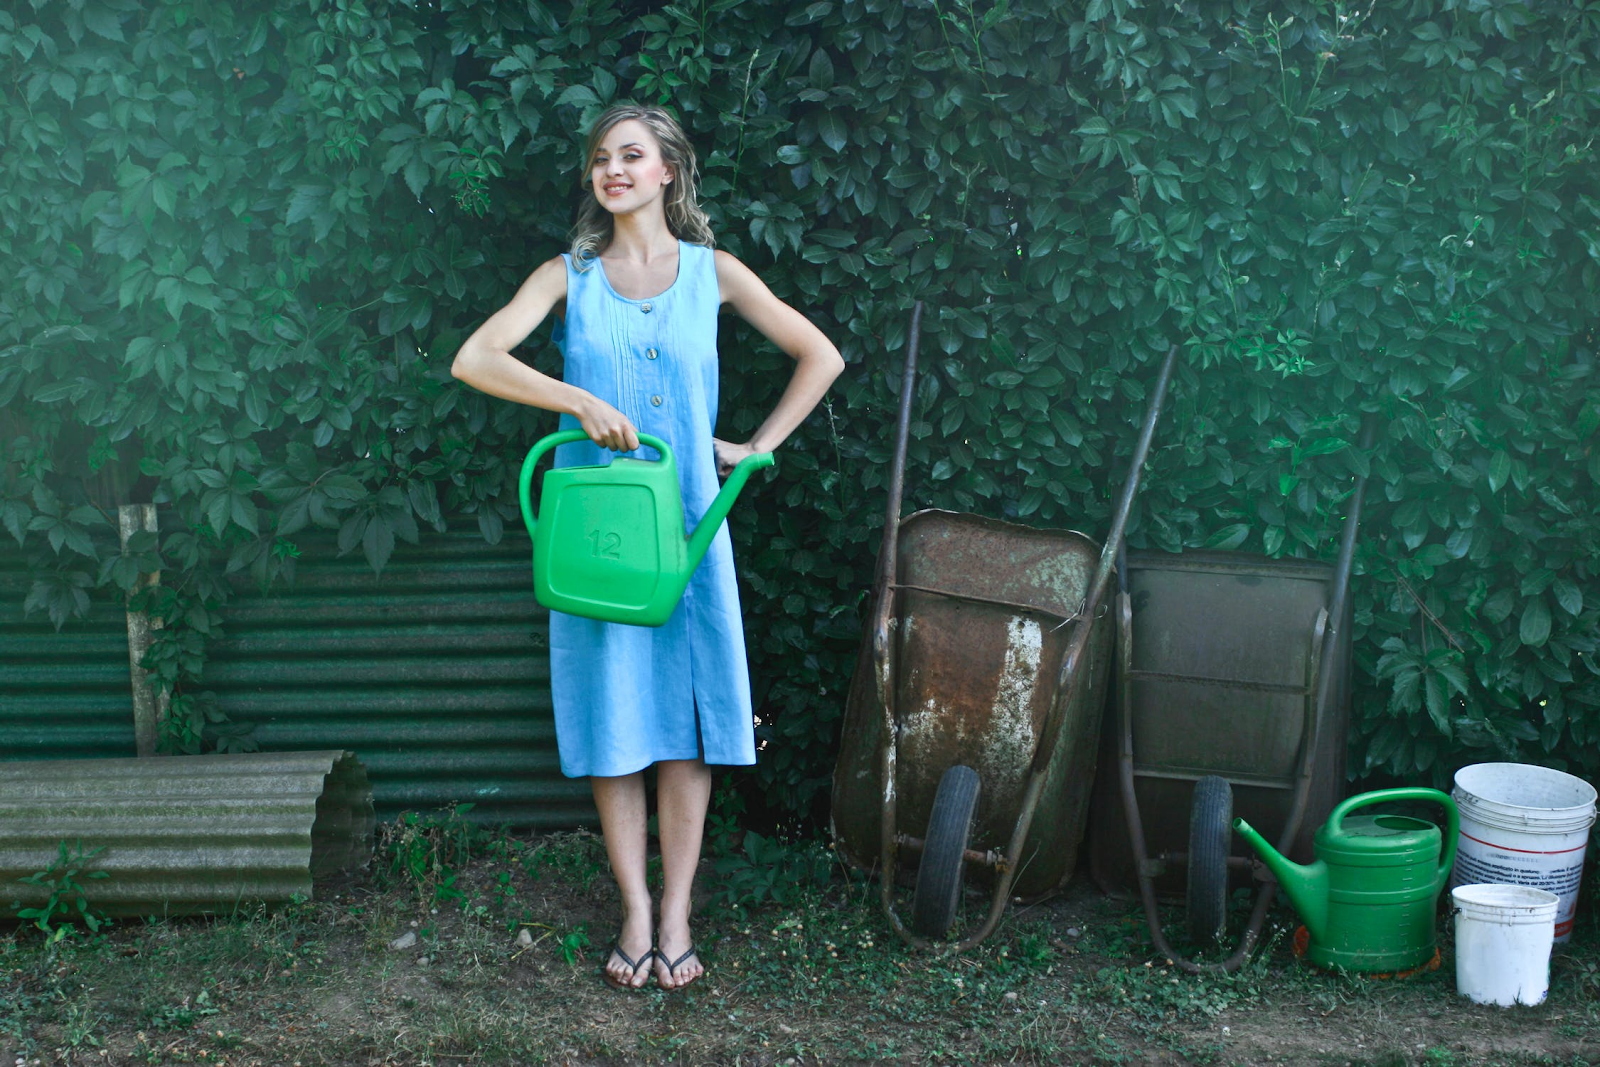 smiling woman in a blue dress holding green watering can in a garden